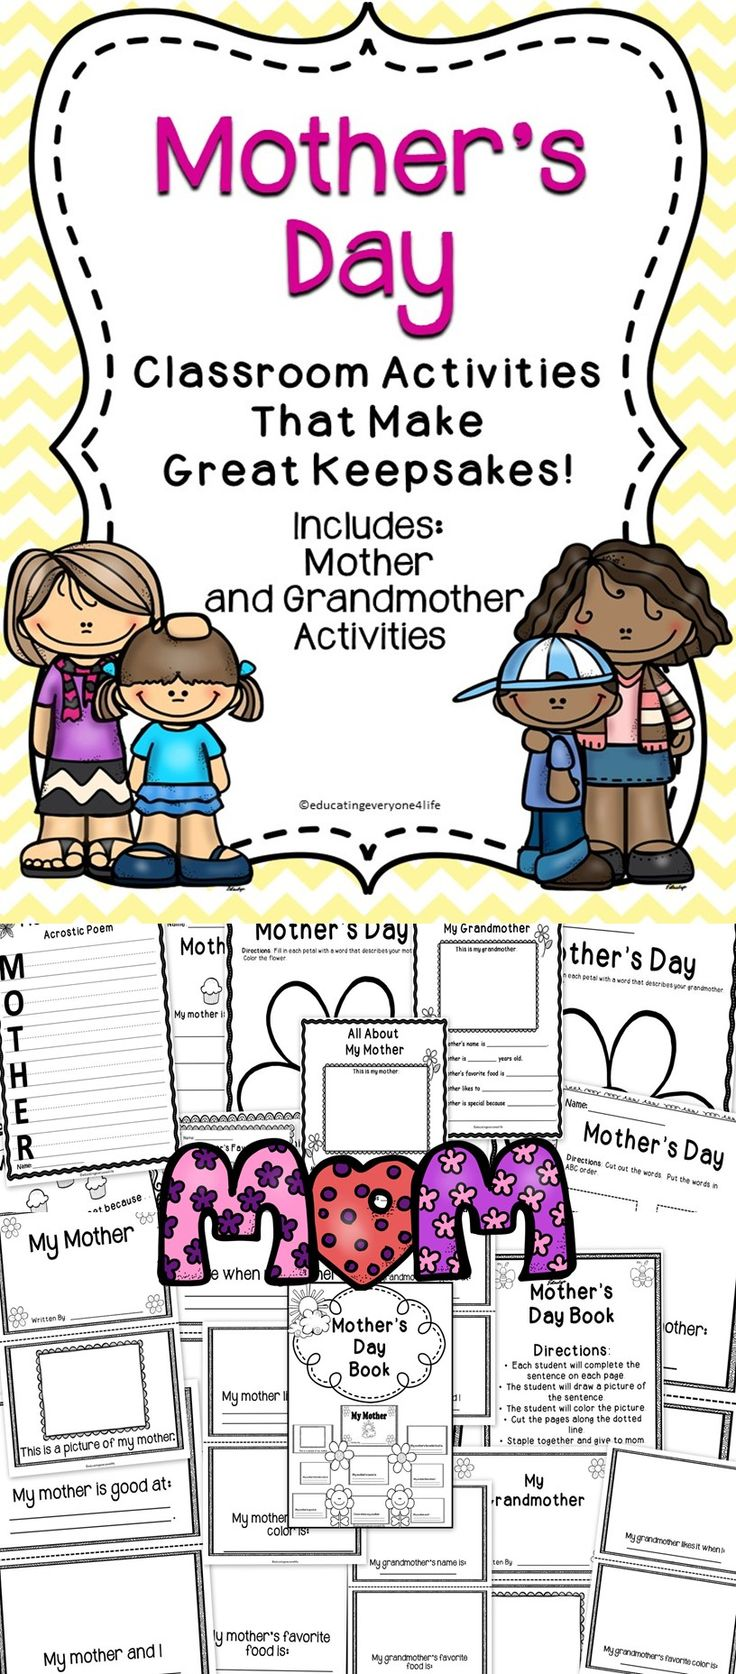 Mother's Day Activities For Children - A great collection of Mother's Day activities to use with kids.  These activities make great keepsakes!